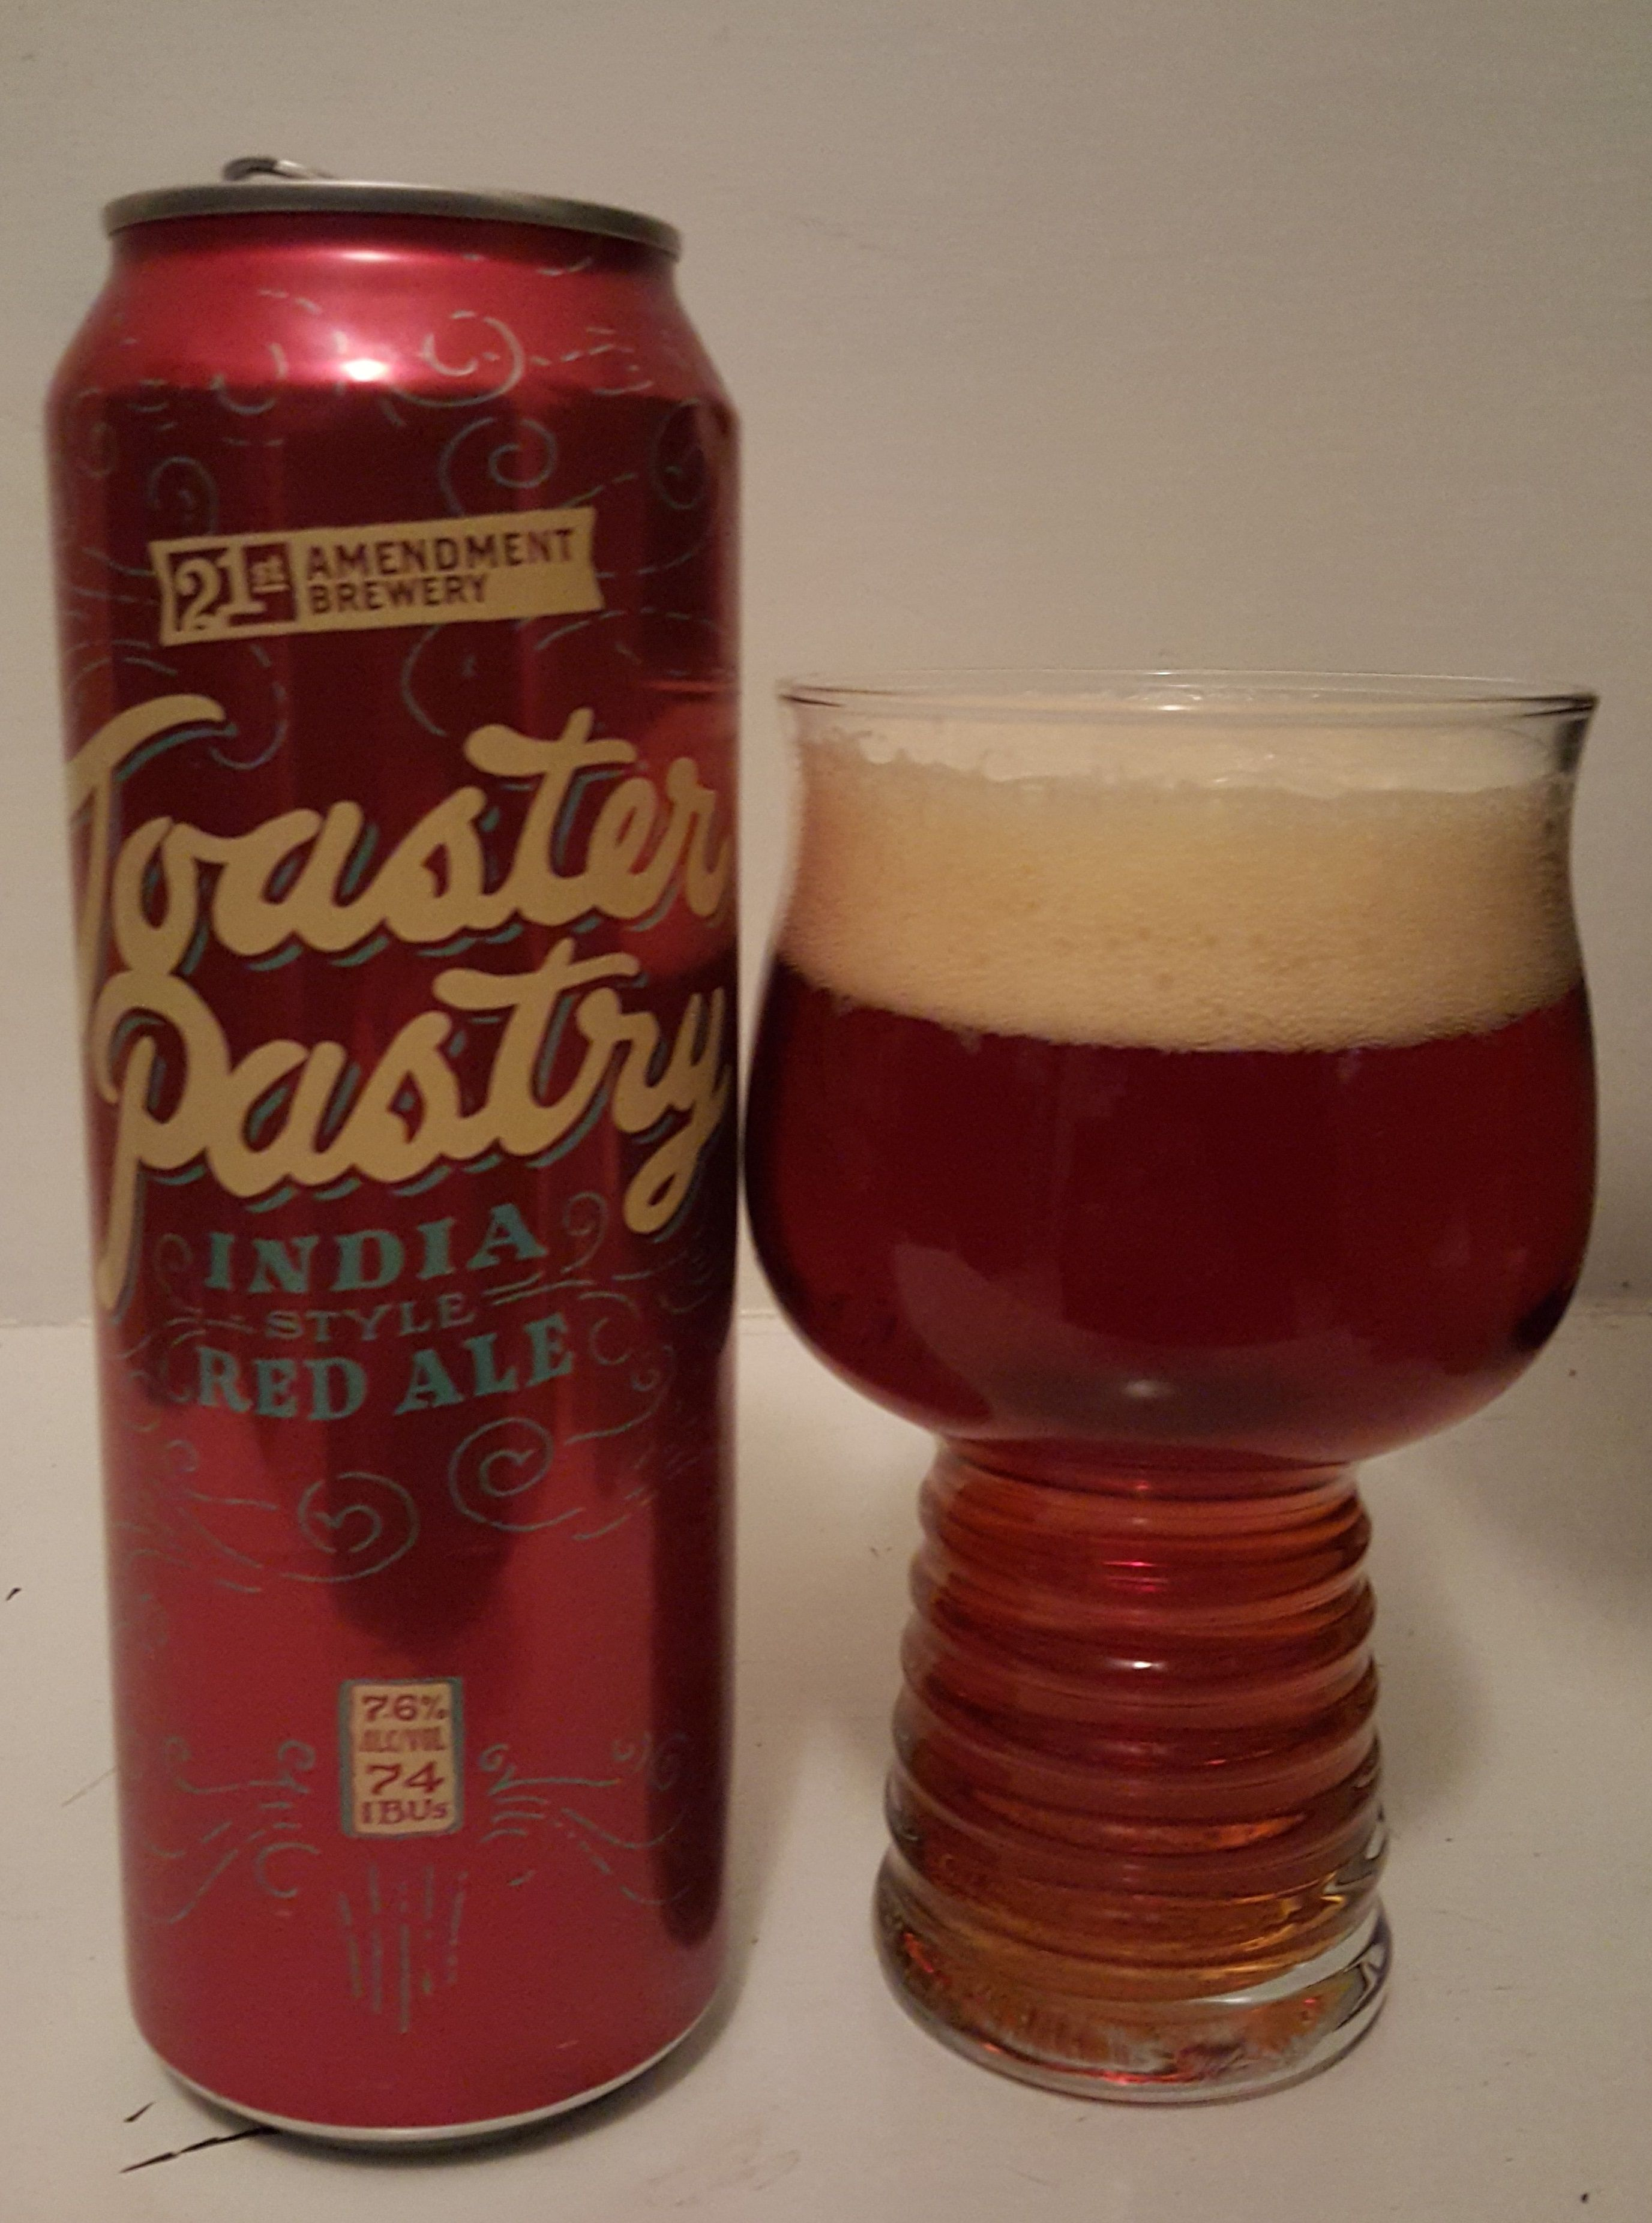 Best 25 21st amendment ideas on pinterest 21st for Craft beer san francisco